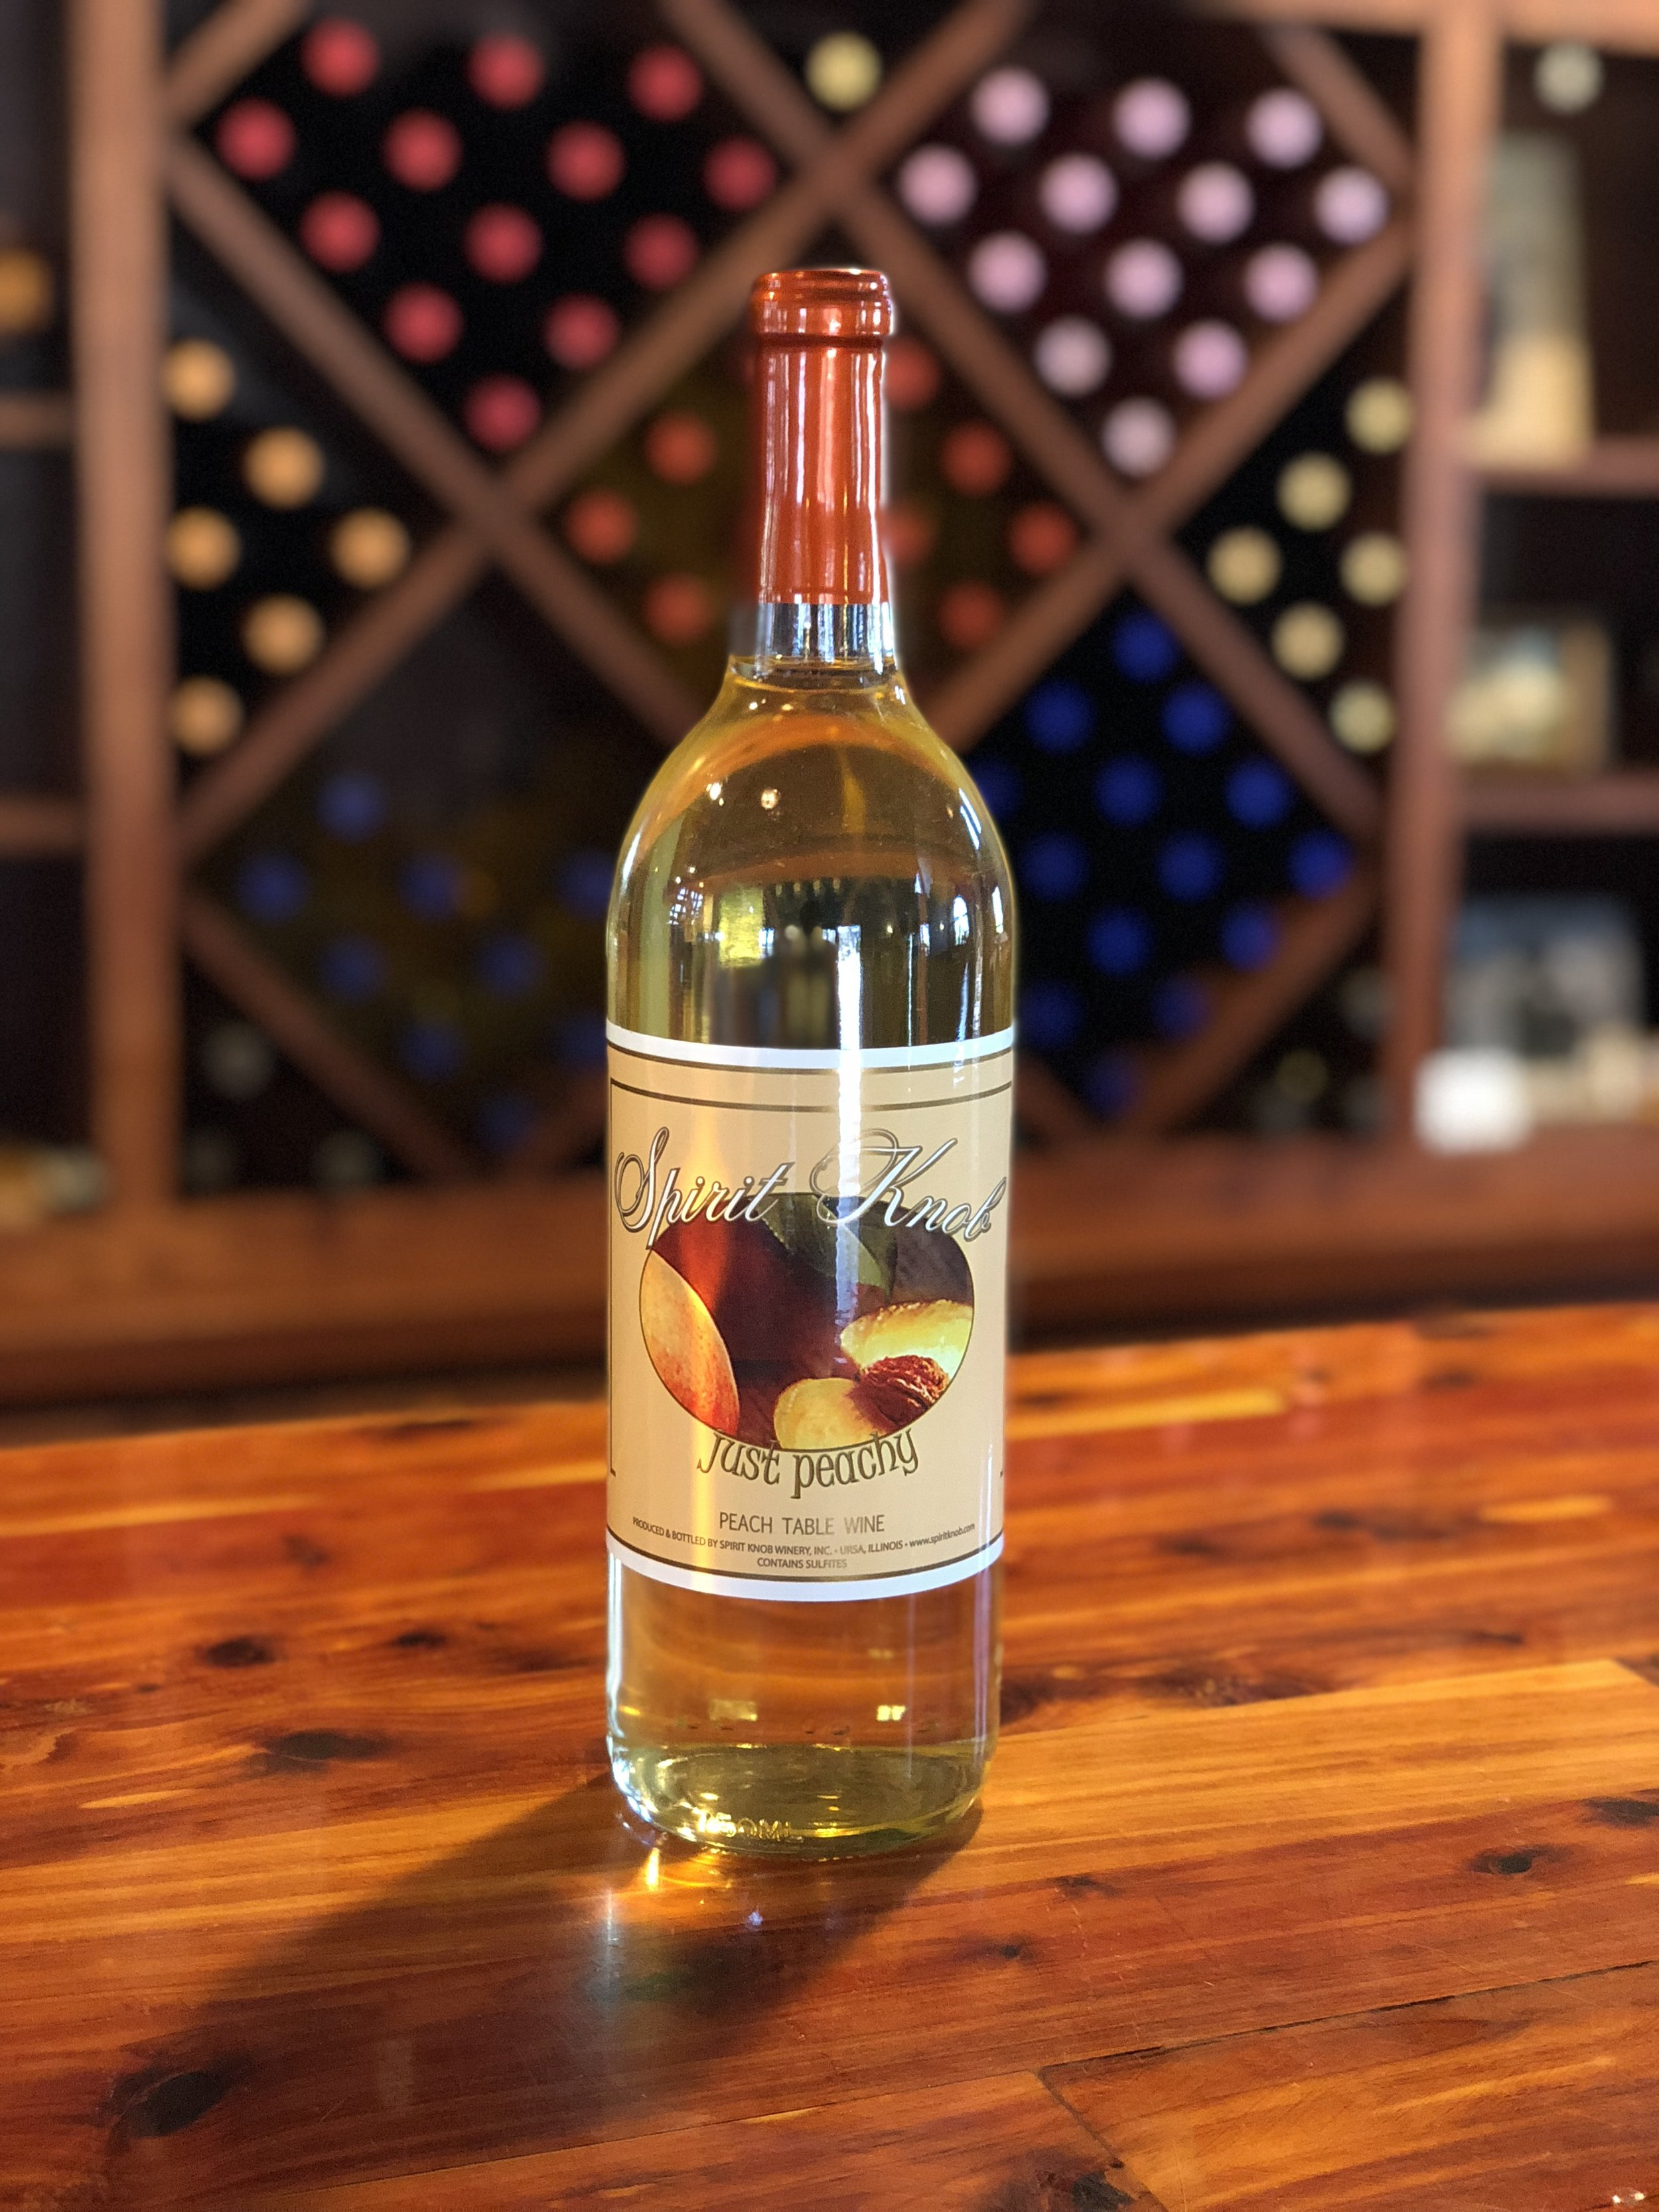 Just Peachy - Pour this in your glass smell a bushel basket of yesteryear.Click here to buy now!